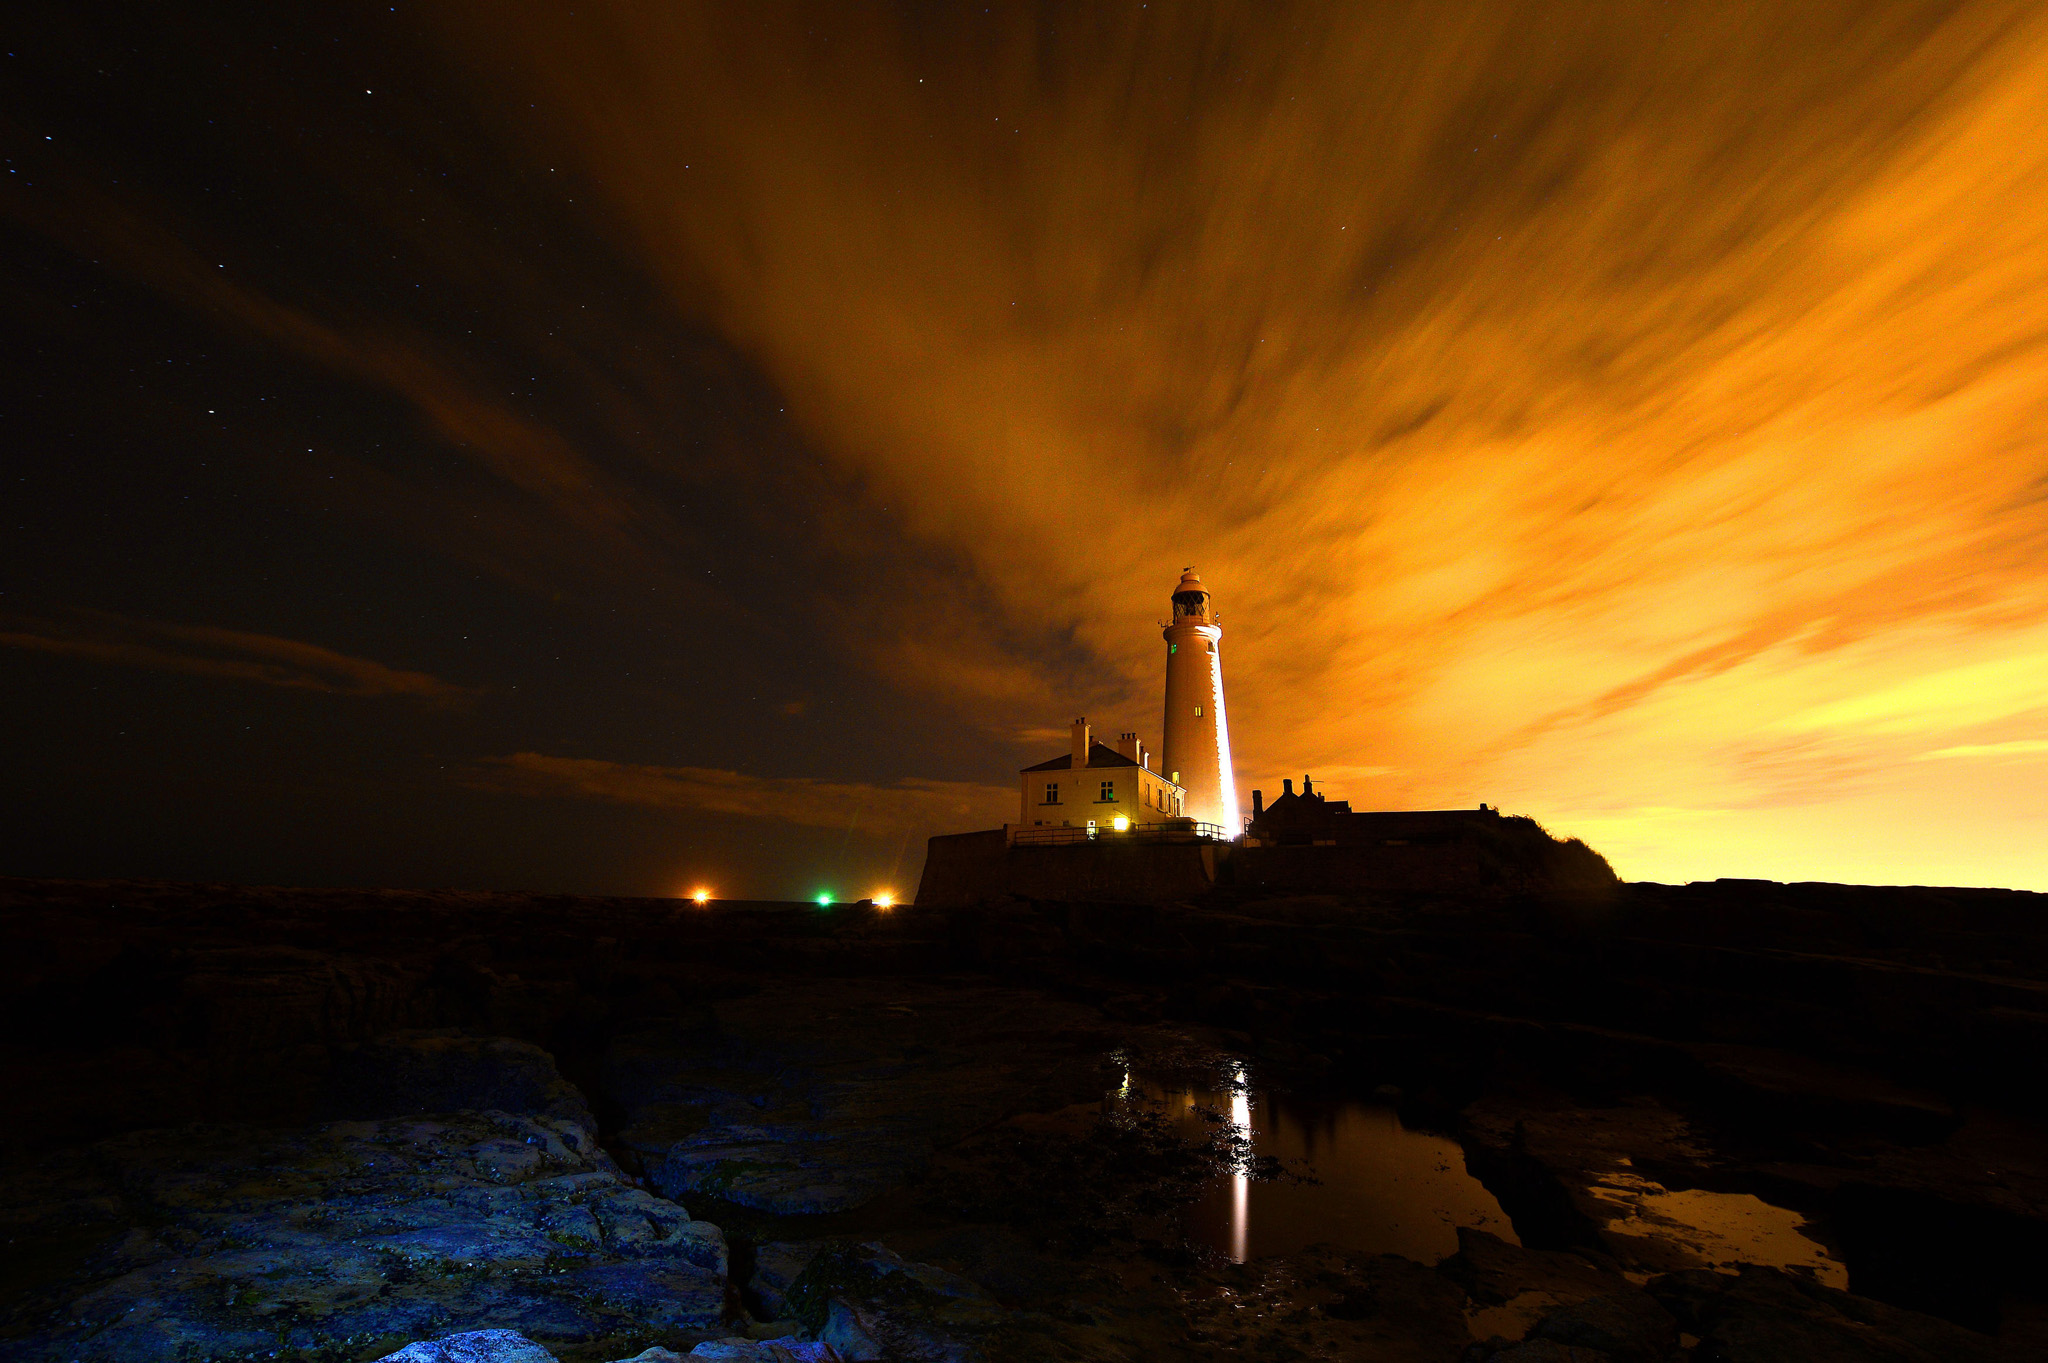 St Mary's Lighthouse - Tyne & Wear...File photo dated 14/08/14 using a time-exposure, of a night sky over St Mary's Lighthouse on St Maryís Island, Whitley Bay, Tyne & Wear. PRESS ASSOCIATION Photo. Issue date: Monday September 22, 2014. Press Association photographer Owen Humphreys, has been photographing the changing weather patterns over St Mary's, near to his home, for the last 18 months, capturing the different 'moods', from sunrises to sunsets, storms and even auroras. The Lighthouse, completed in 1898 on a hazardous coast for shipping, remained operational until 1984 when it was superseded by modern navigational techniques. Since then the Lighthouse and former keepers' cottages have been operated as a visitor centre by North Tyneside Council. The surrounding Nature Reserve contains an area of rockpools, clifftop grassland, a beach and newly created wetland habitats and attracts thousands of visitors each year. Photo credit should read: Owen Humphreys/PA Wire